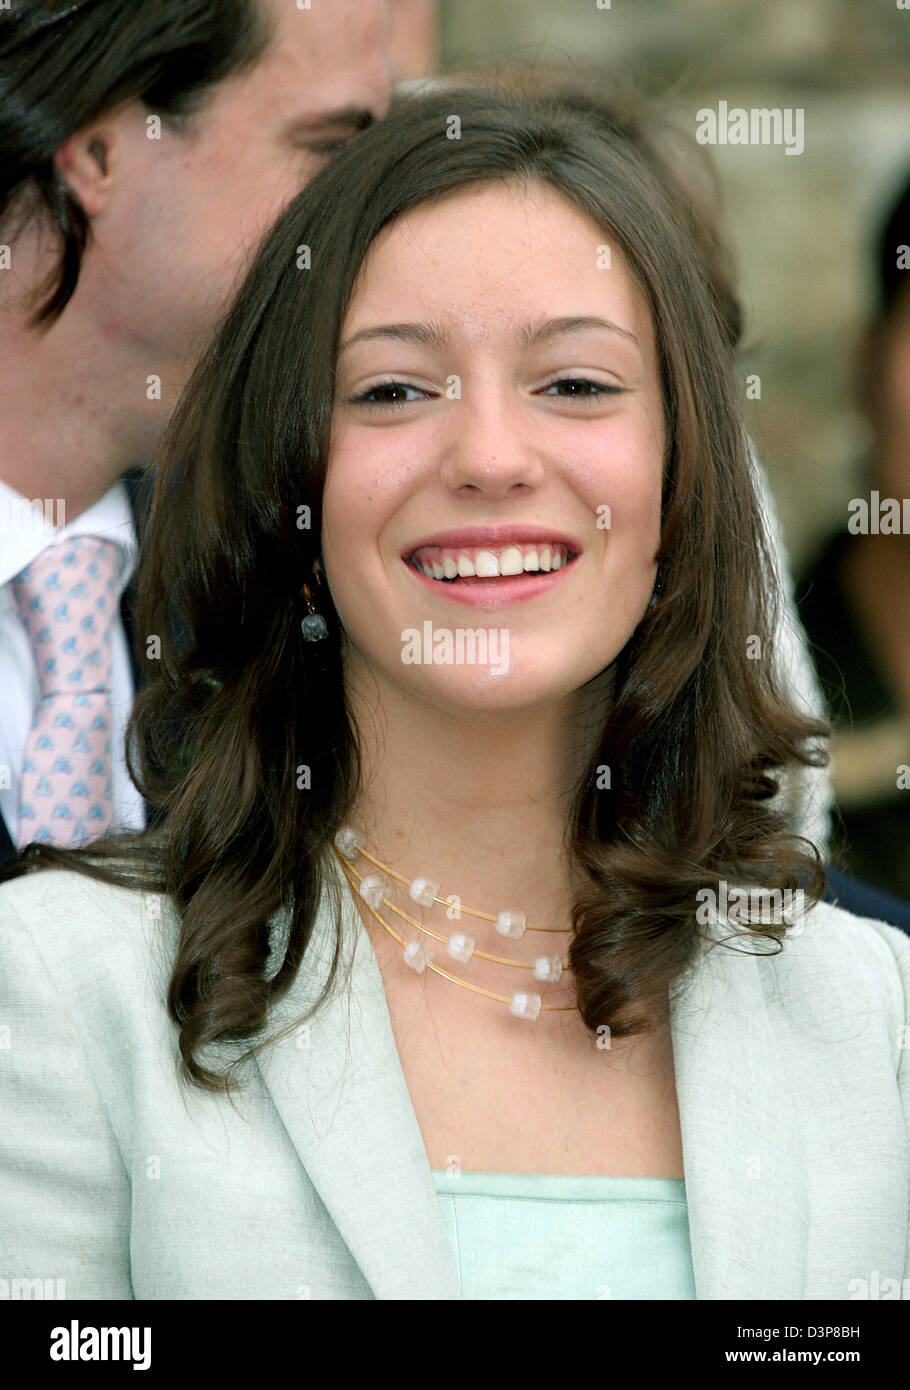 princess alexandra of luxembourg arrives to the church wedding of stock photo 53964613 alamy. Black Bedroom Furniture Sets. Home Design Ideas